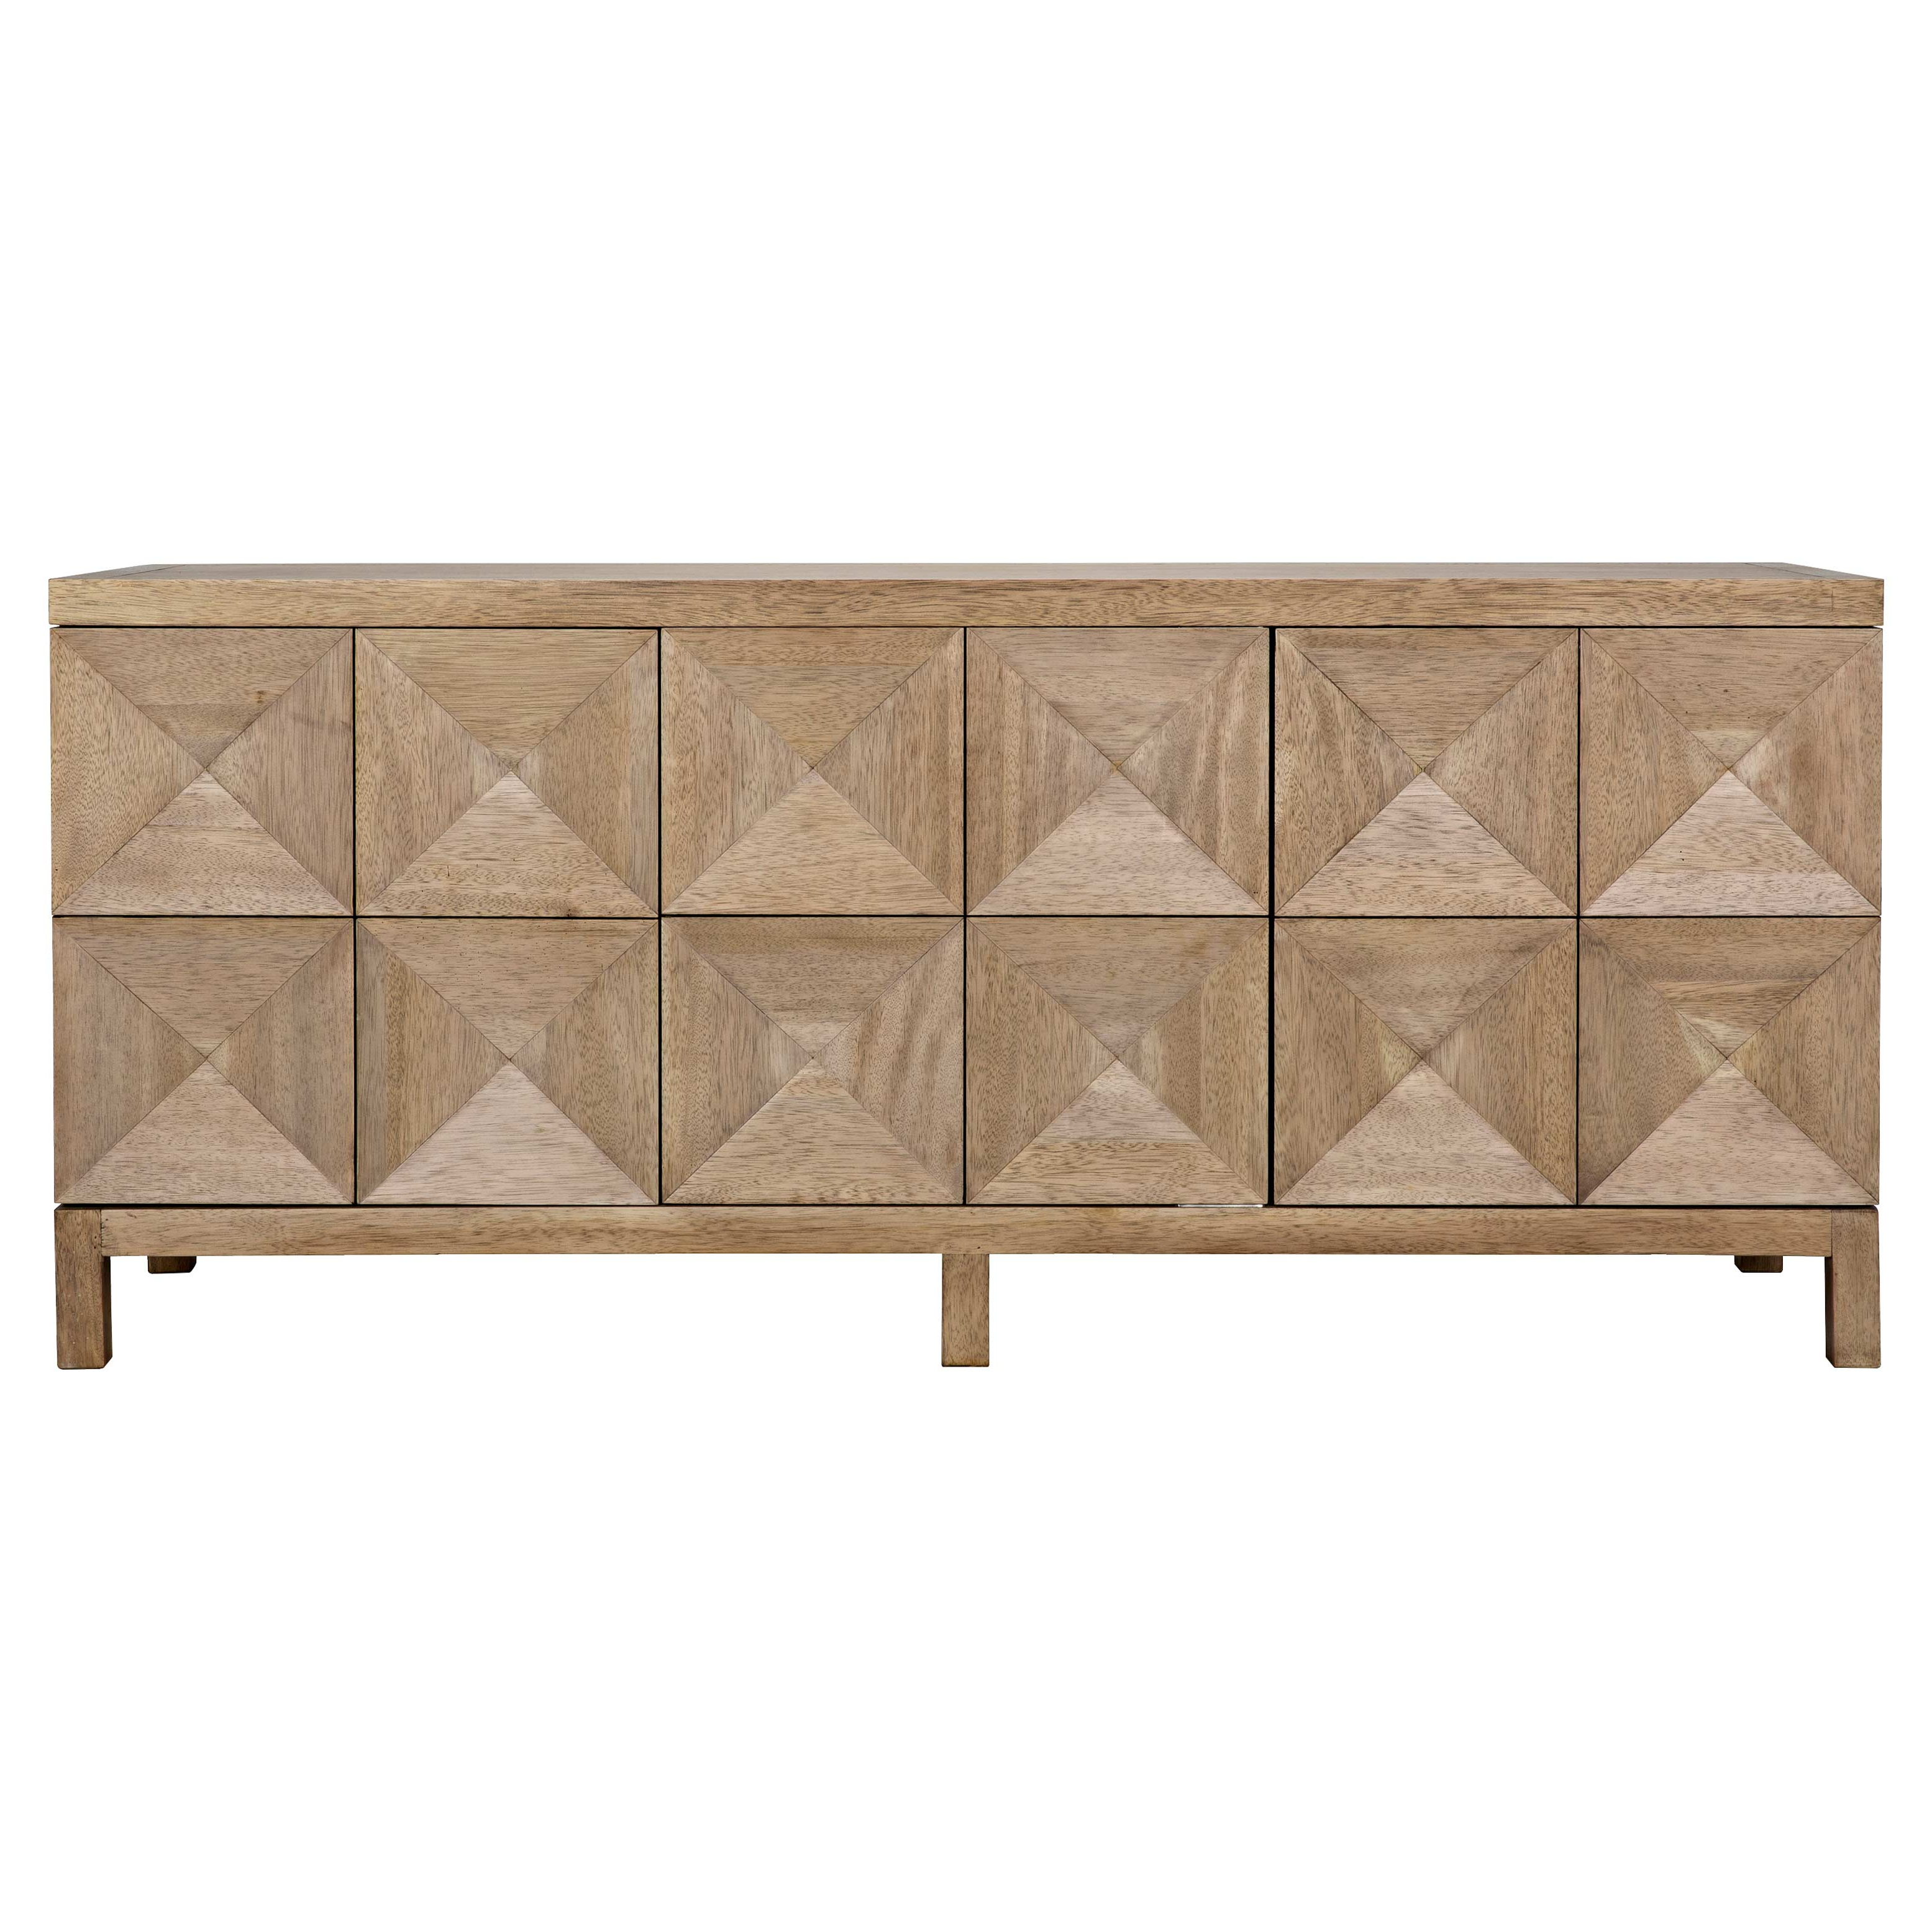 Kathy Kuo Home In Brown Chevron 4 Door Sideboards (View 13 of 20)